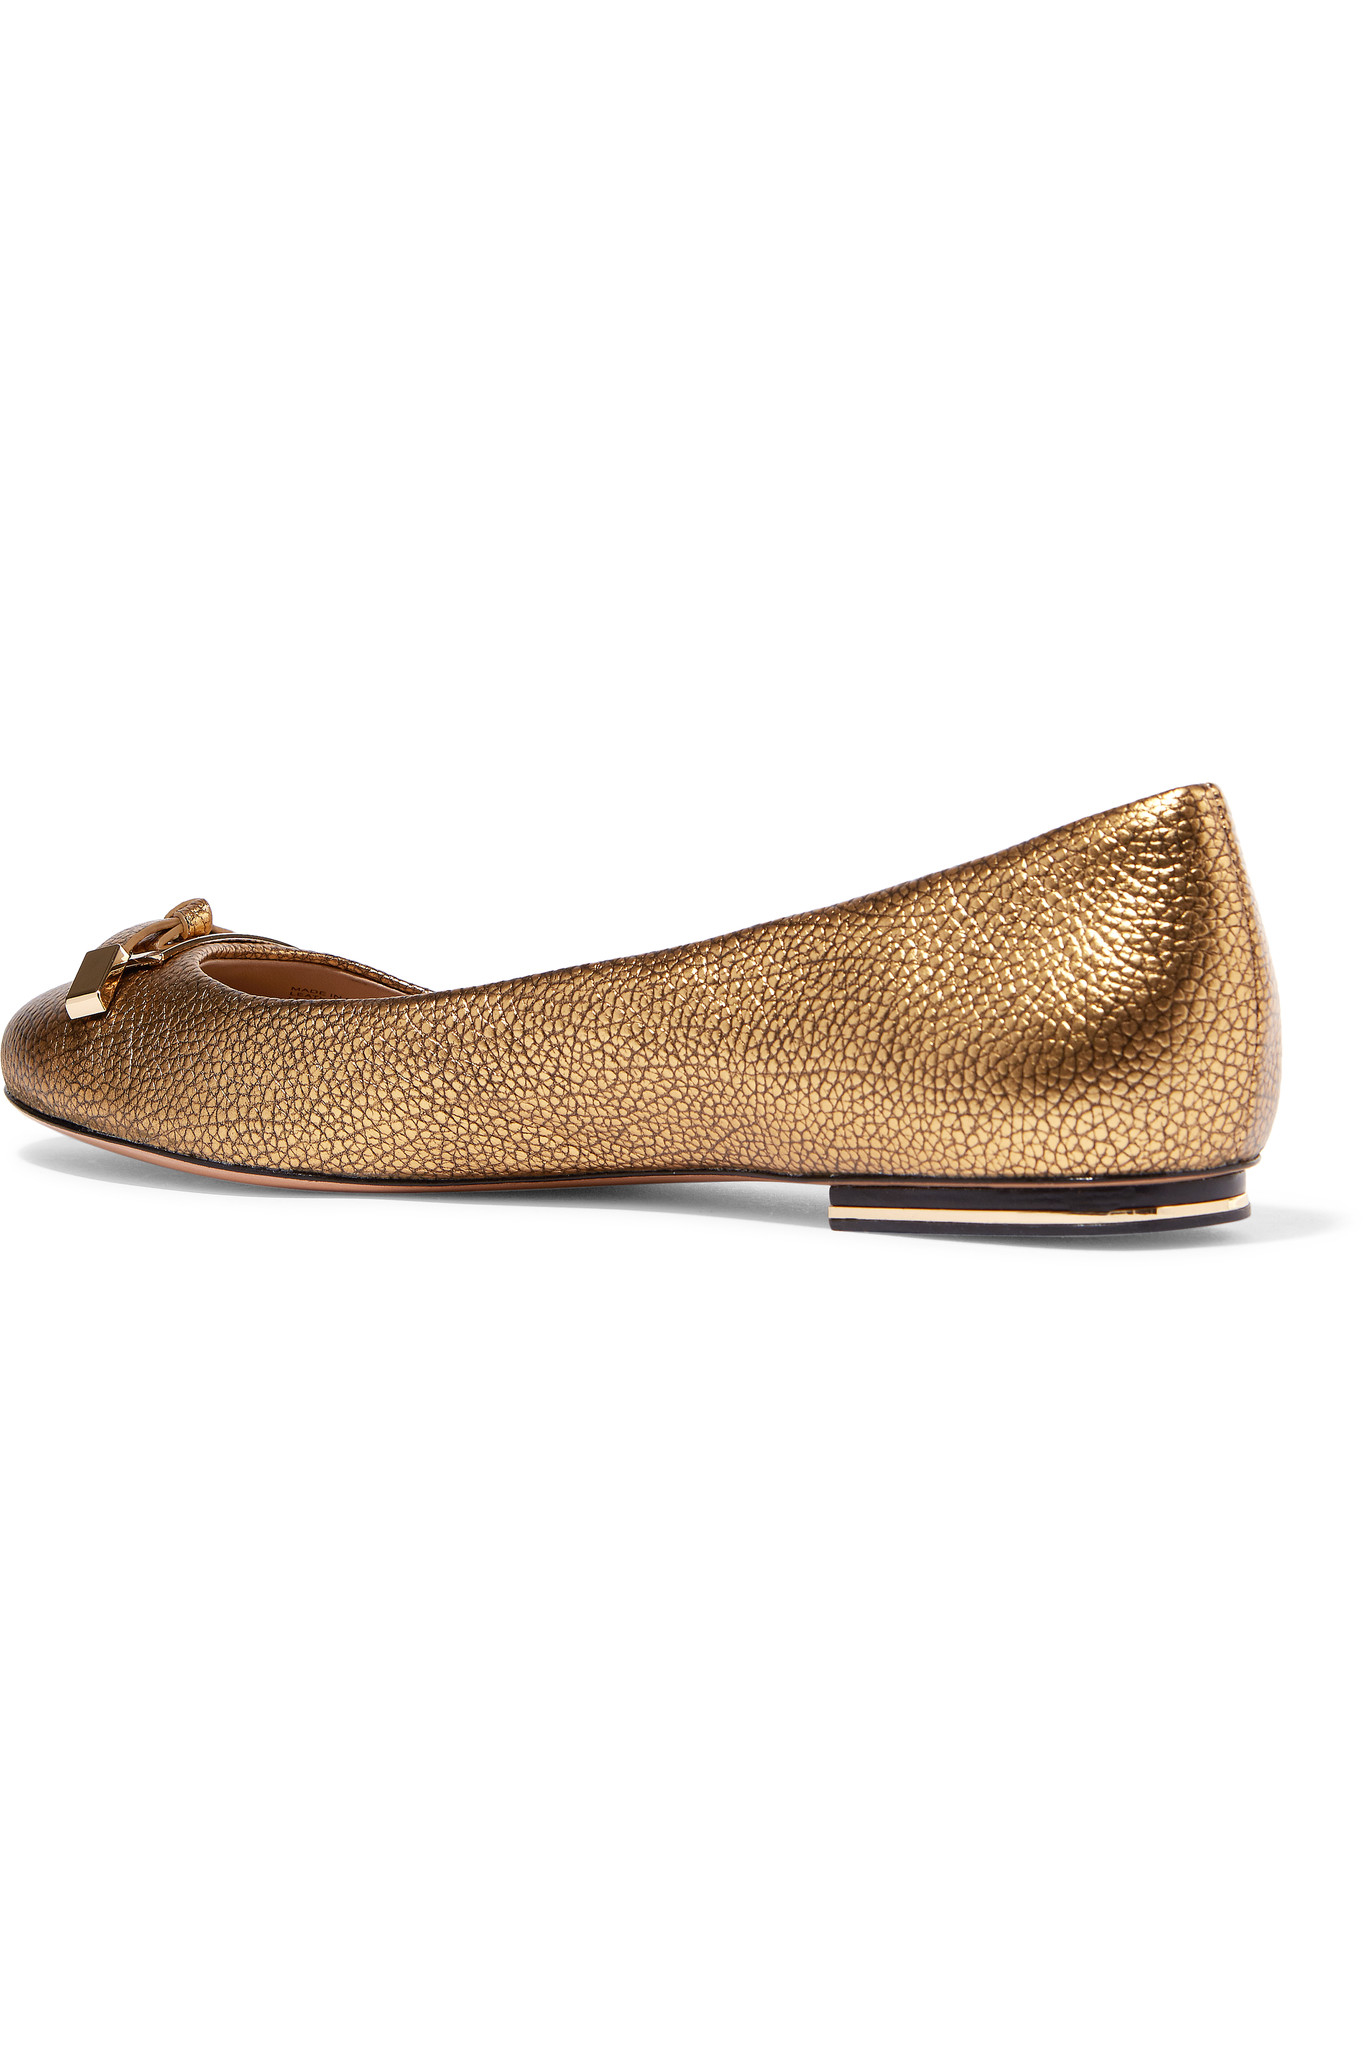 michael kors pearl textured leather ballet flats in gray gold lyst. Black Bedroom Furniture Sets. Home Design Ideas